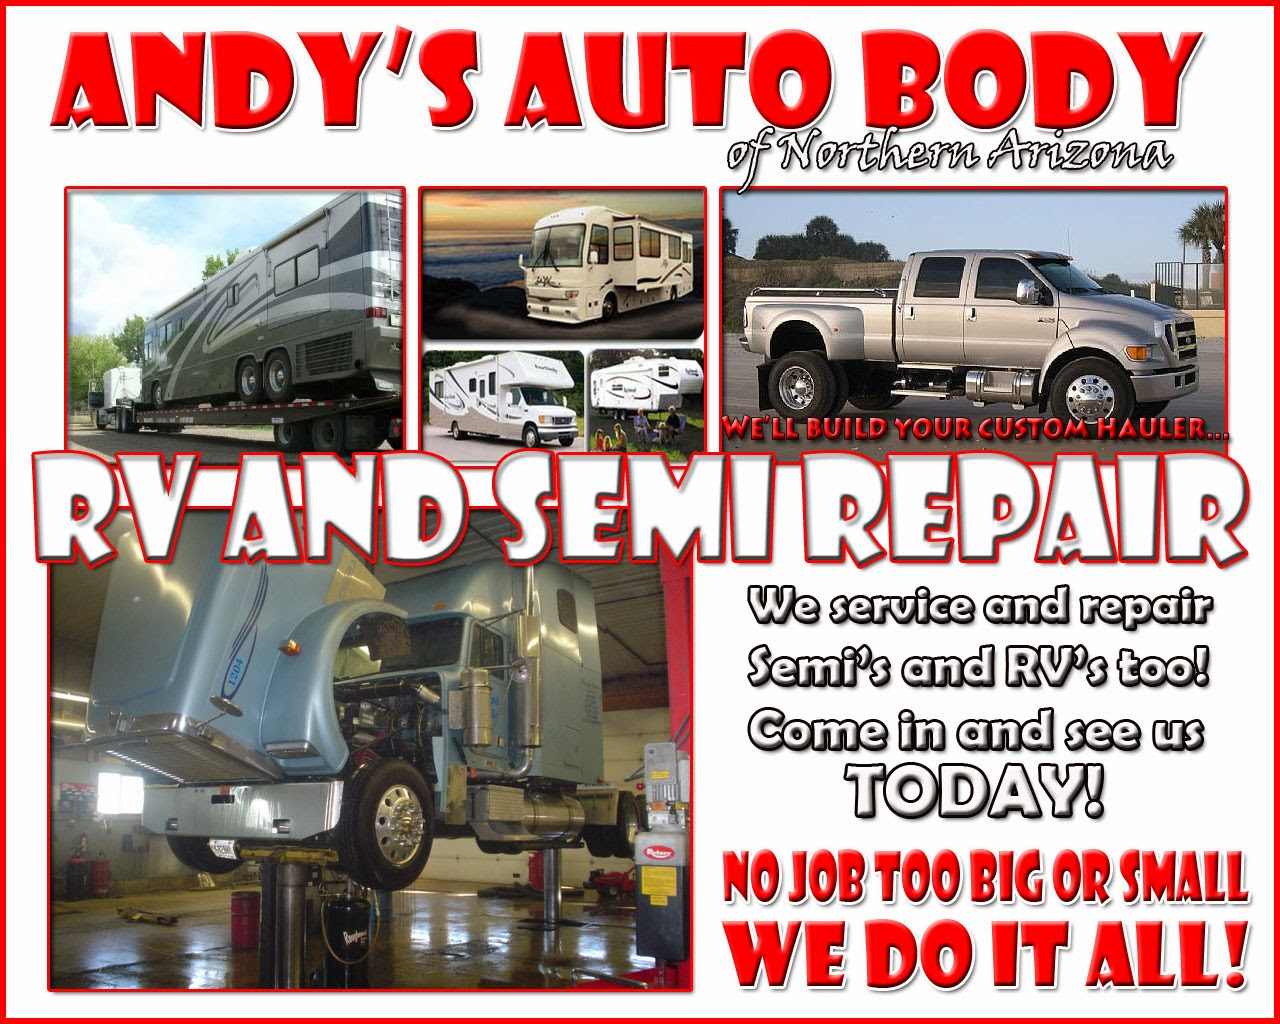 Why Choose Us? Andy's Auto Service is a family-owned business offering over 25 years of honest and professional collision and mechanical repair experience. We pride ourselves on our strong commitment to quality work and superior customer service, offering lower labor rates and passing along the discounts we receive on parts direct to our customers.